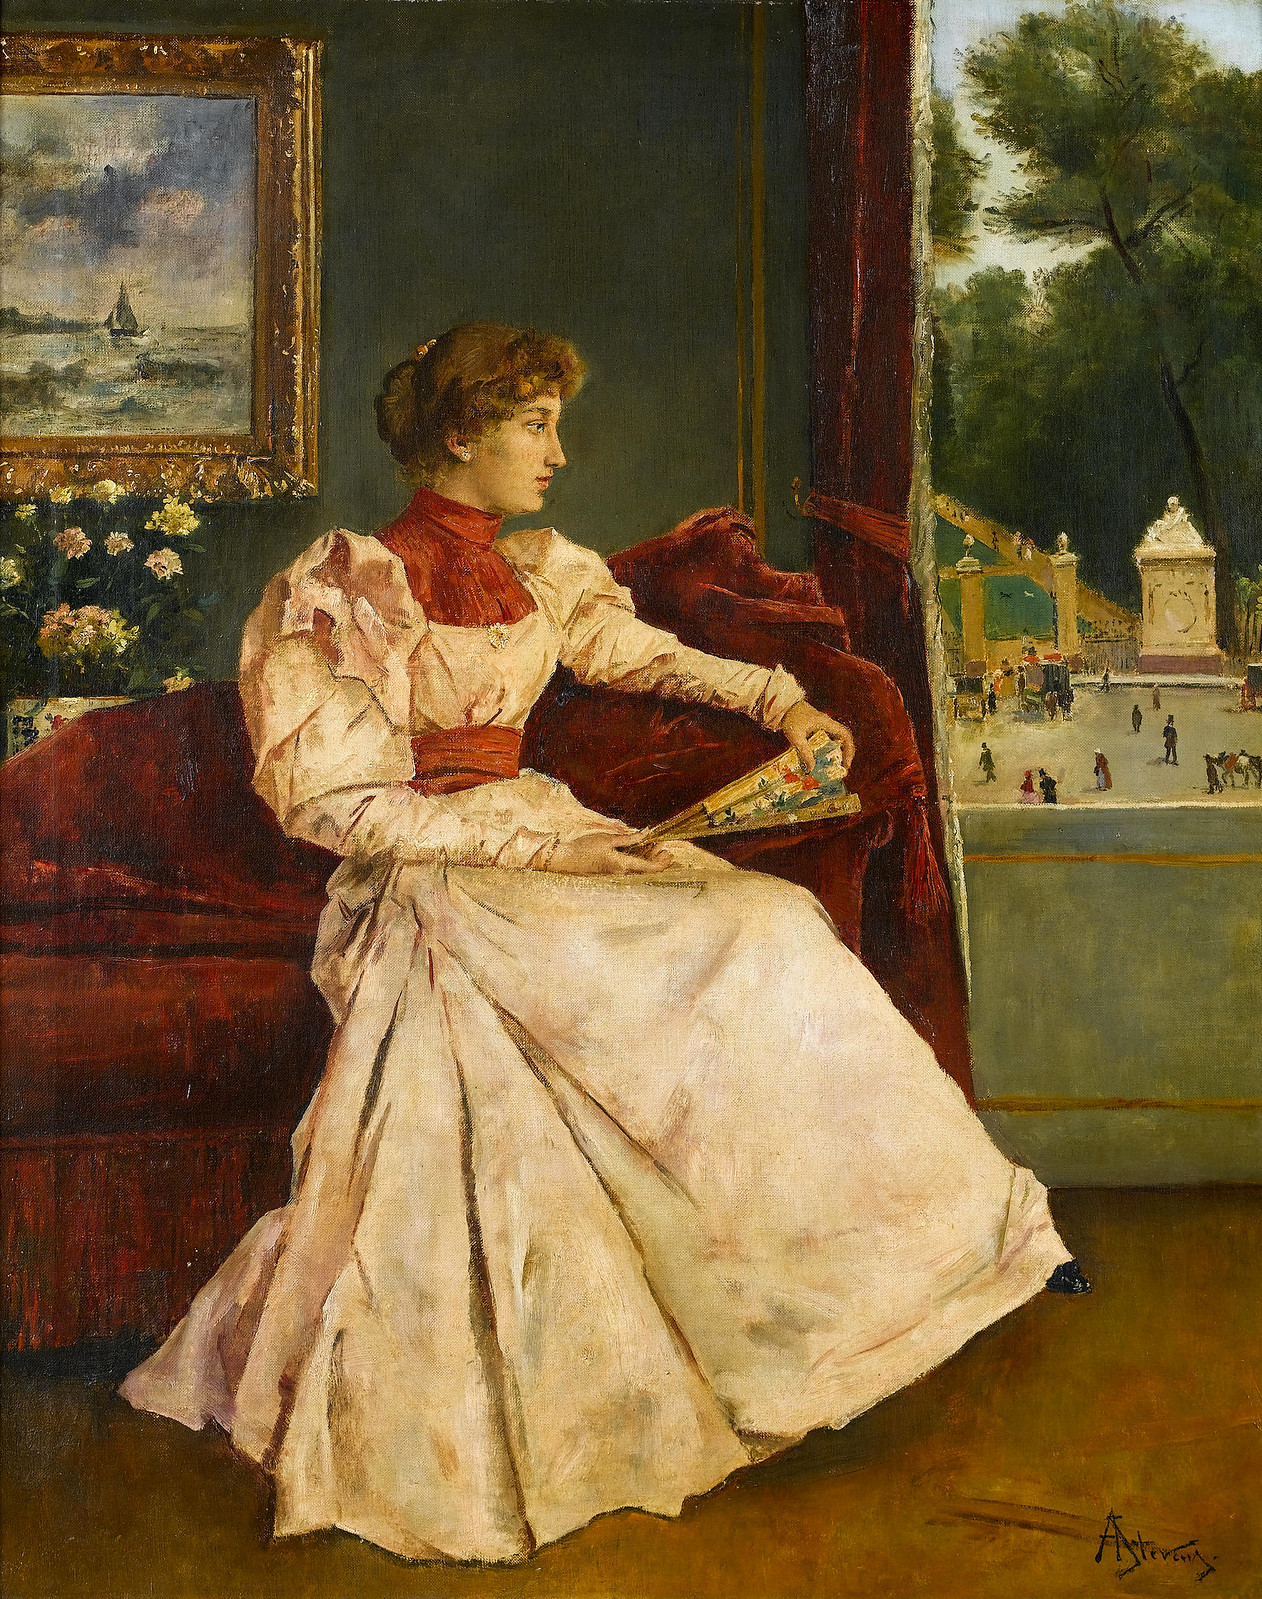 At Home by Alfred Stevens, 1823-1906